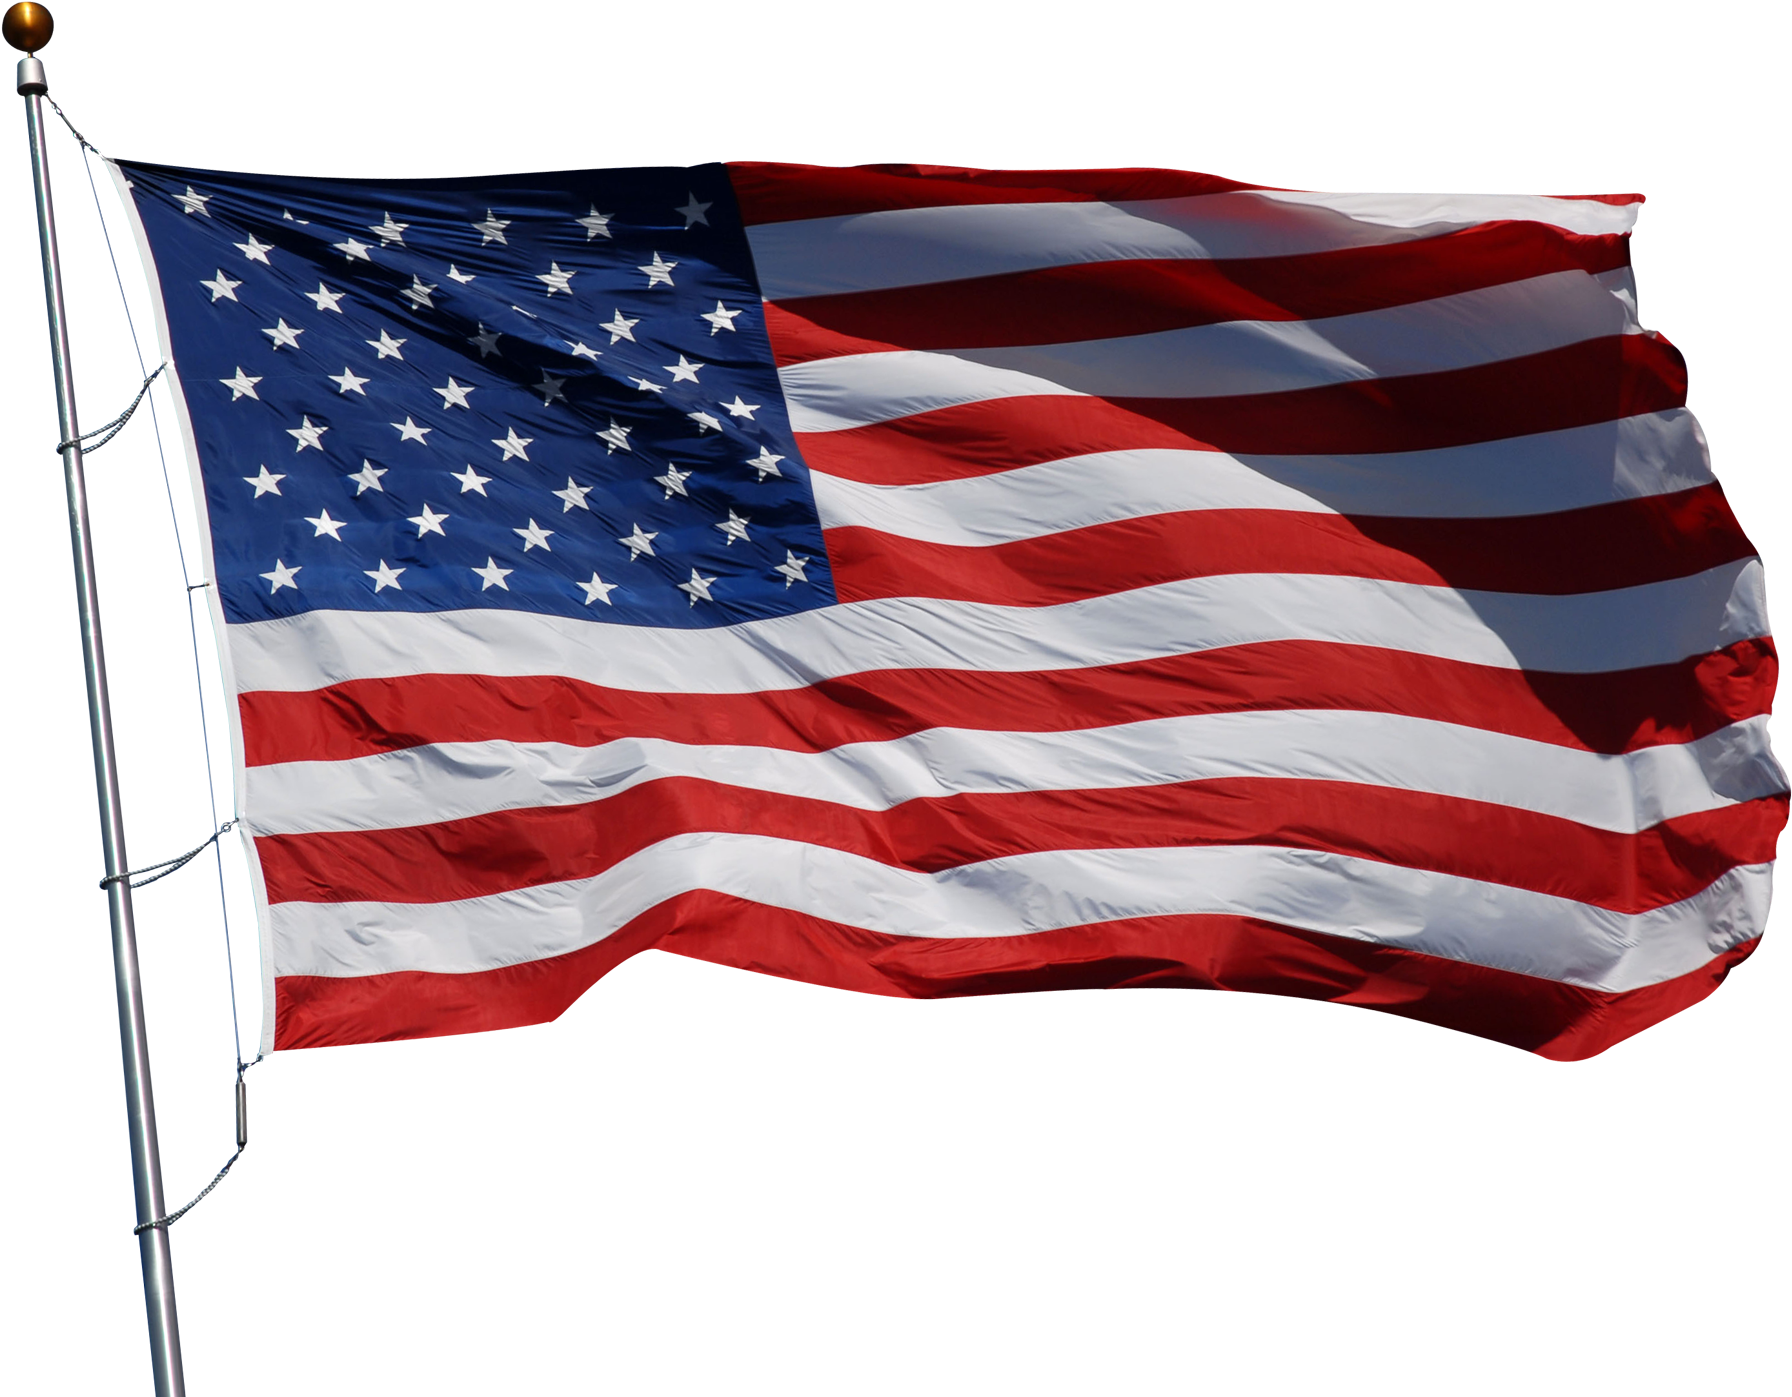 Download Png American Flag   PNG & GIF BASE